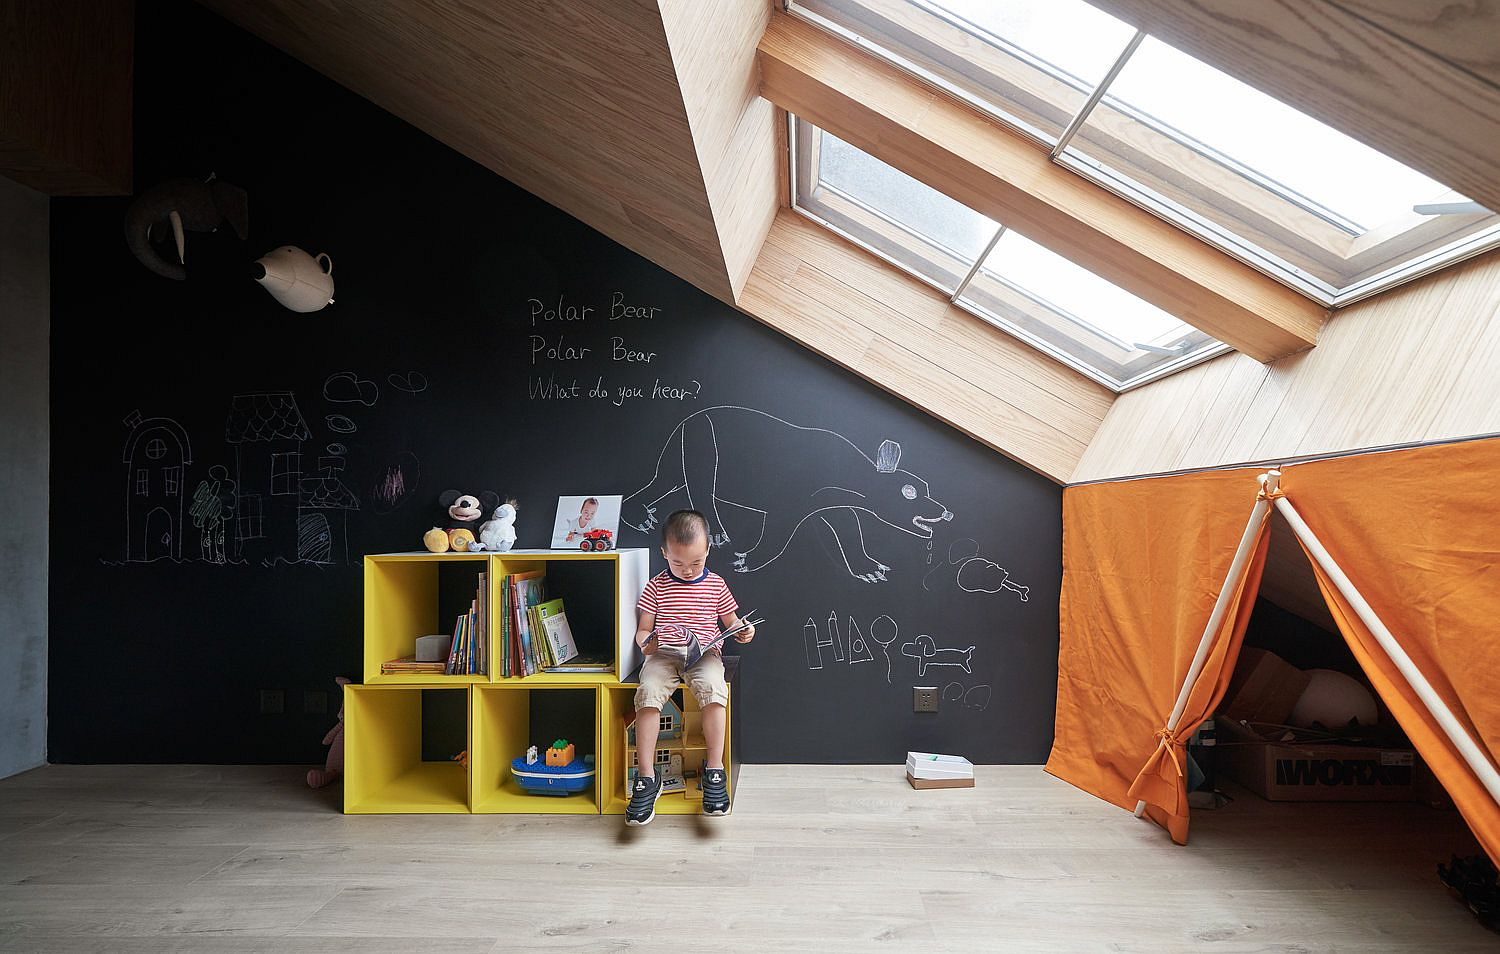 Ceiling windows bring ample light in to the kids' playroom with chalkboard wall